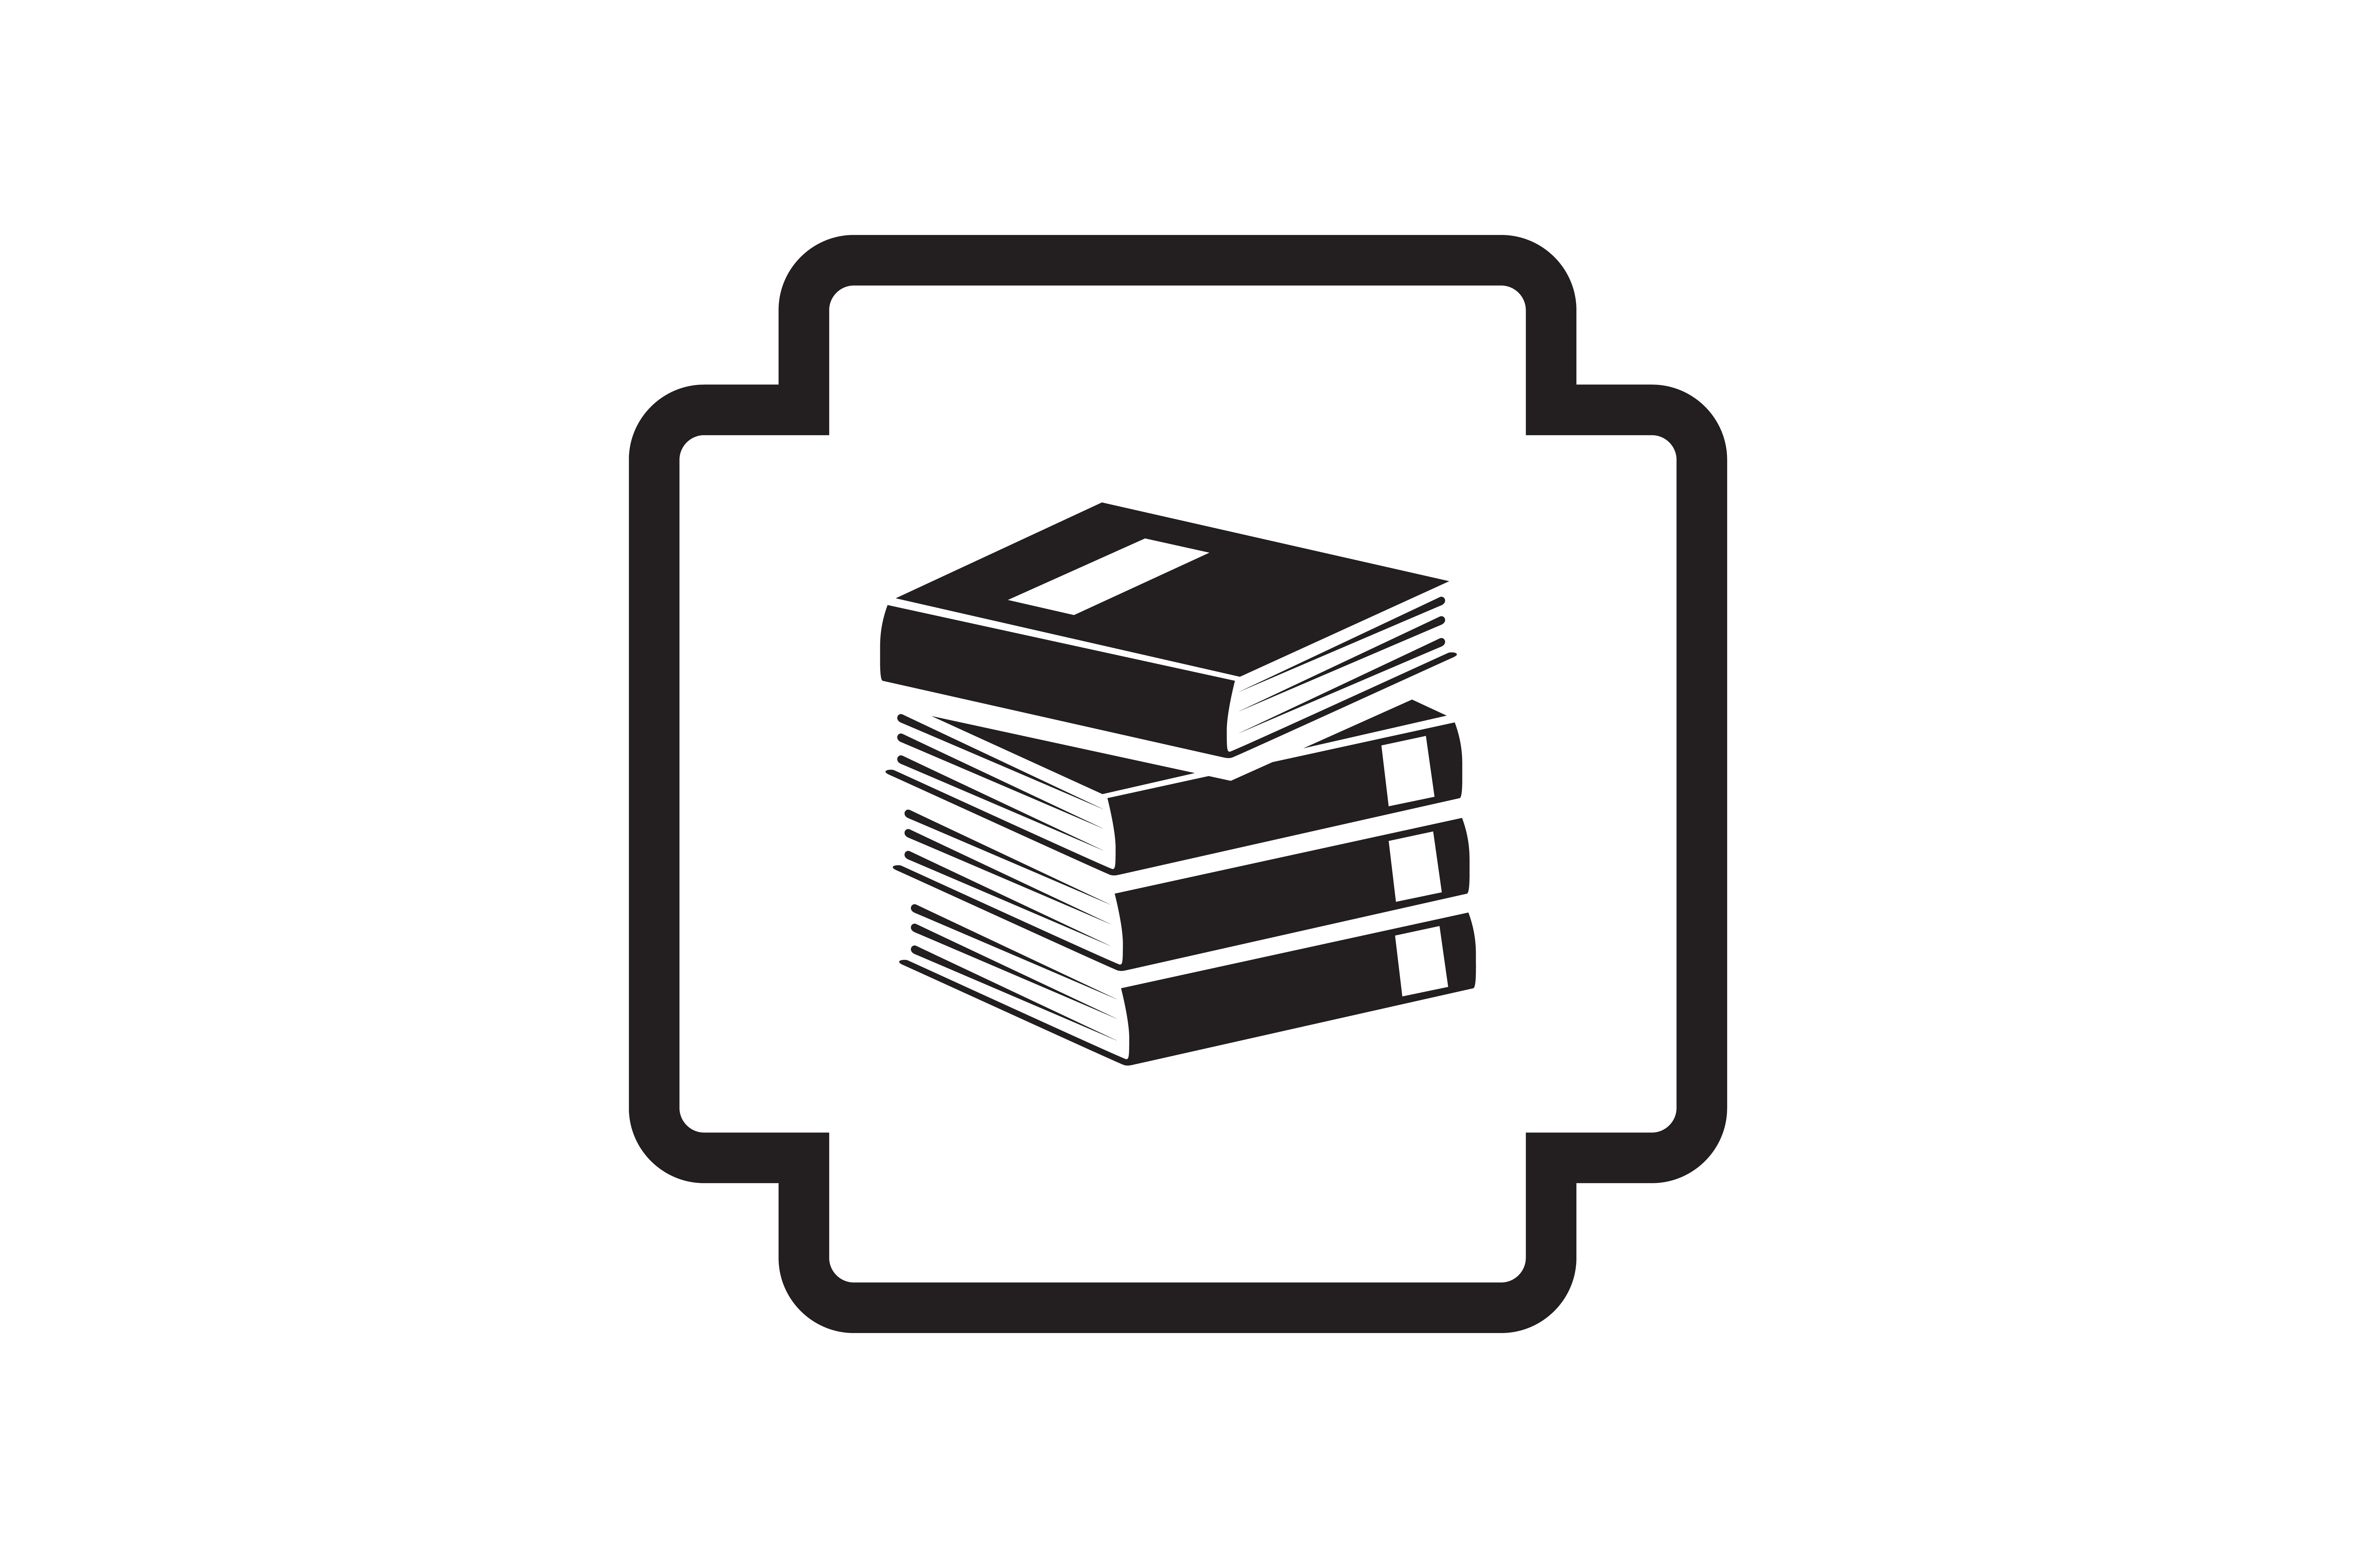 Download Free Stackbook Icon Graphic By Zafreeloicon Creative Fabrica for Cricut Explore, Silhouette and other cutting machines.